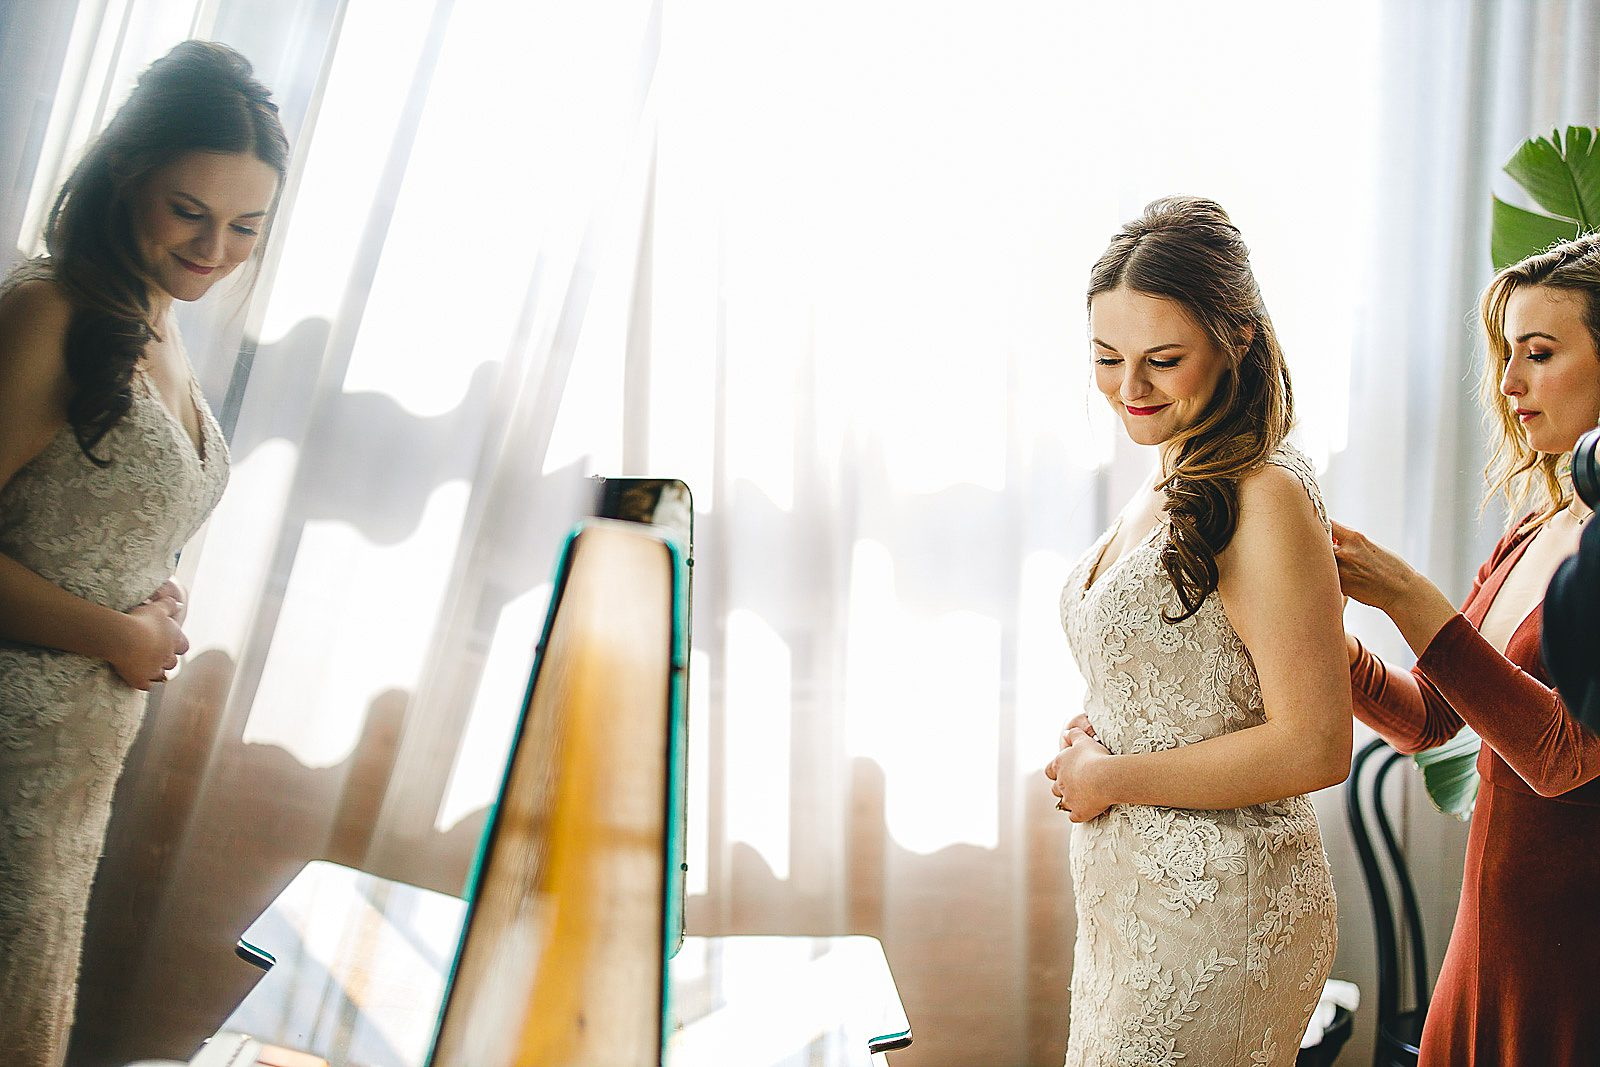 8 chicago wedding photograhy - The Wedding of Samantha + Kyle in Chicago